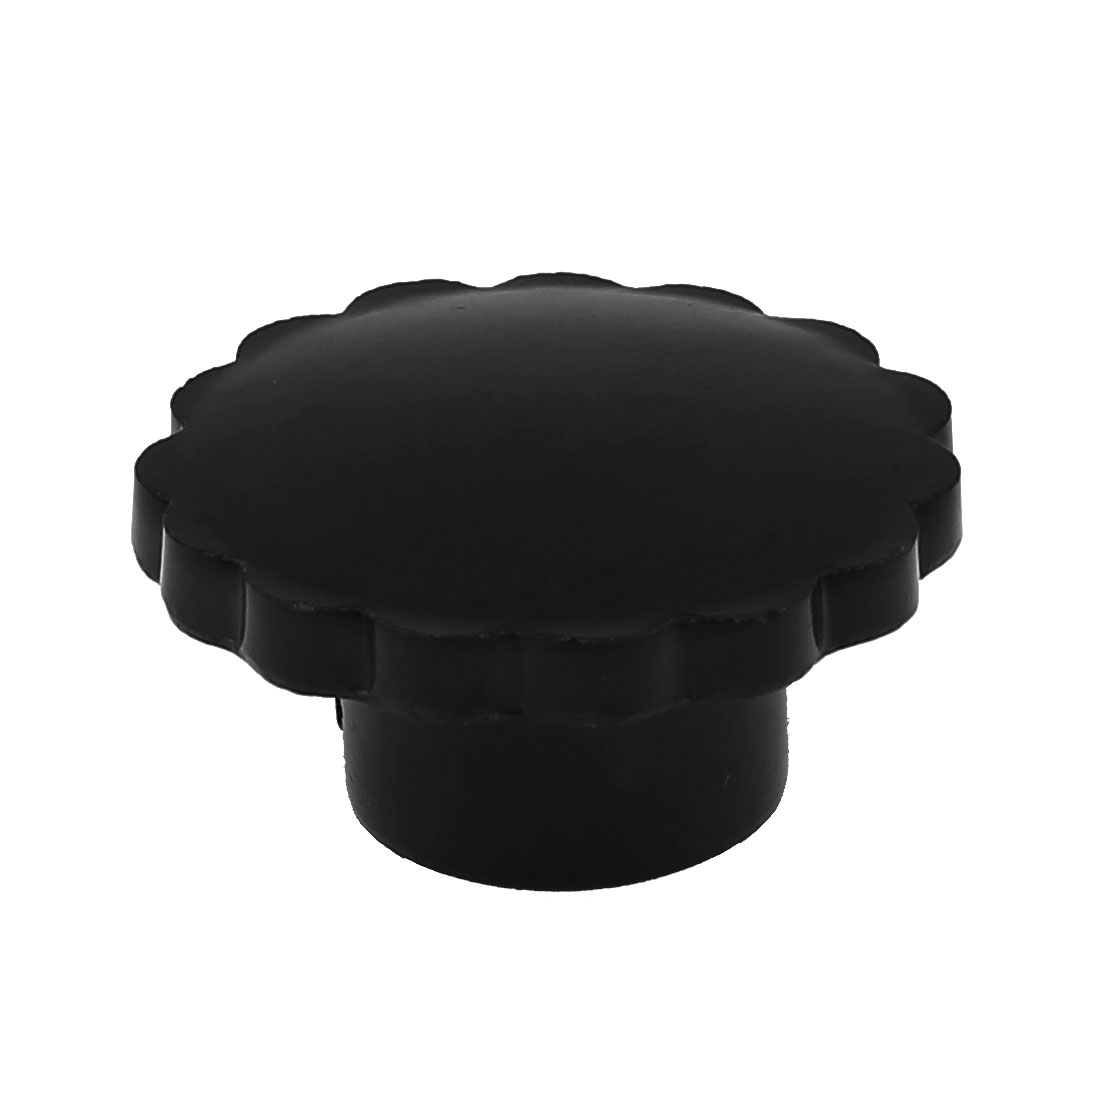 Black Plastic Multiple Lobe Knob 40mm Dia 21mm Height 10mm Hole Diameter